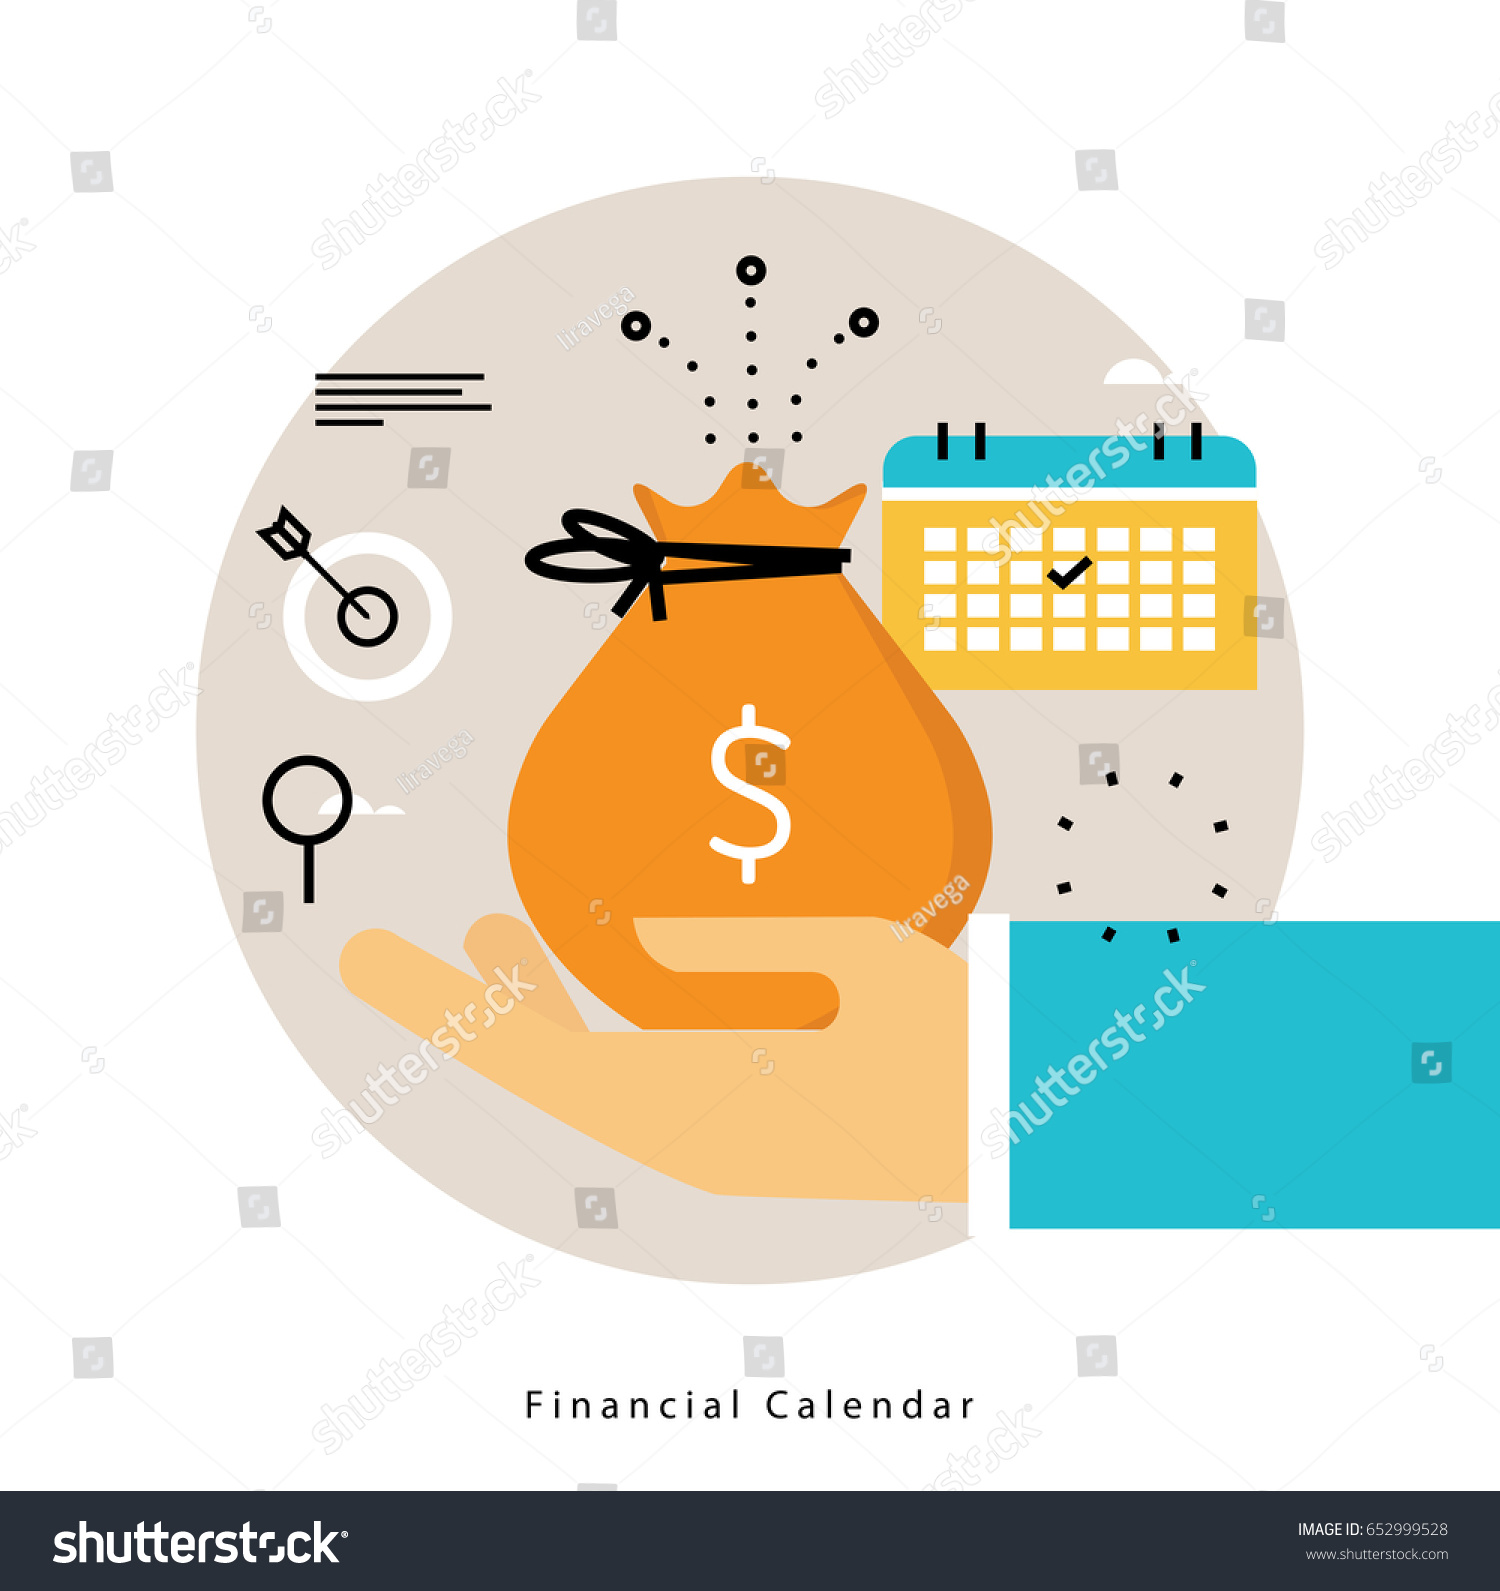 financial calendar monthly budget planning flat のベクター画像素材